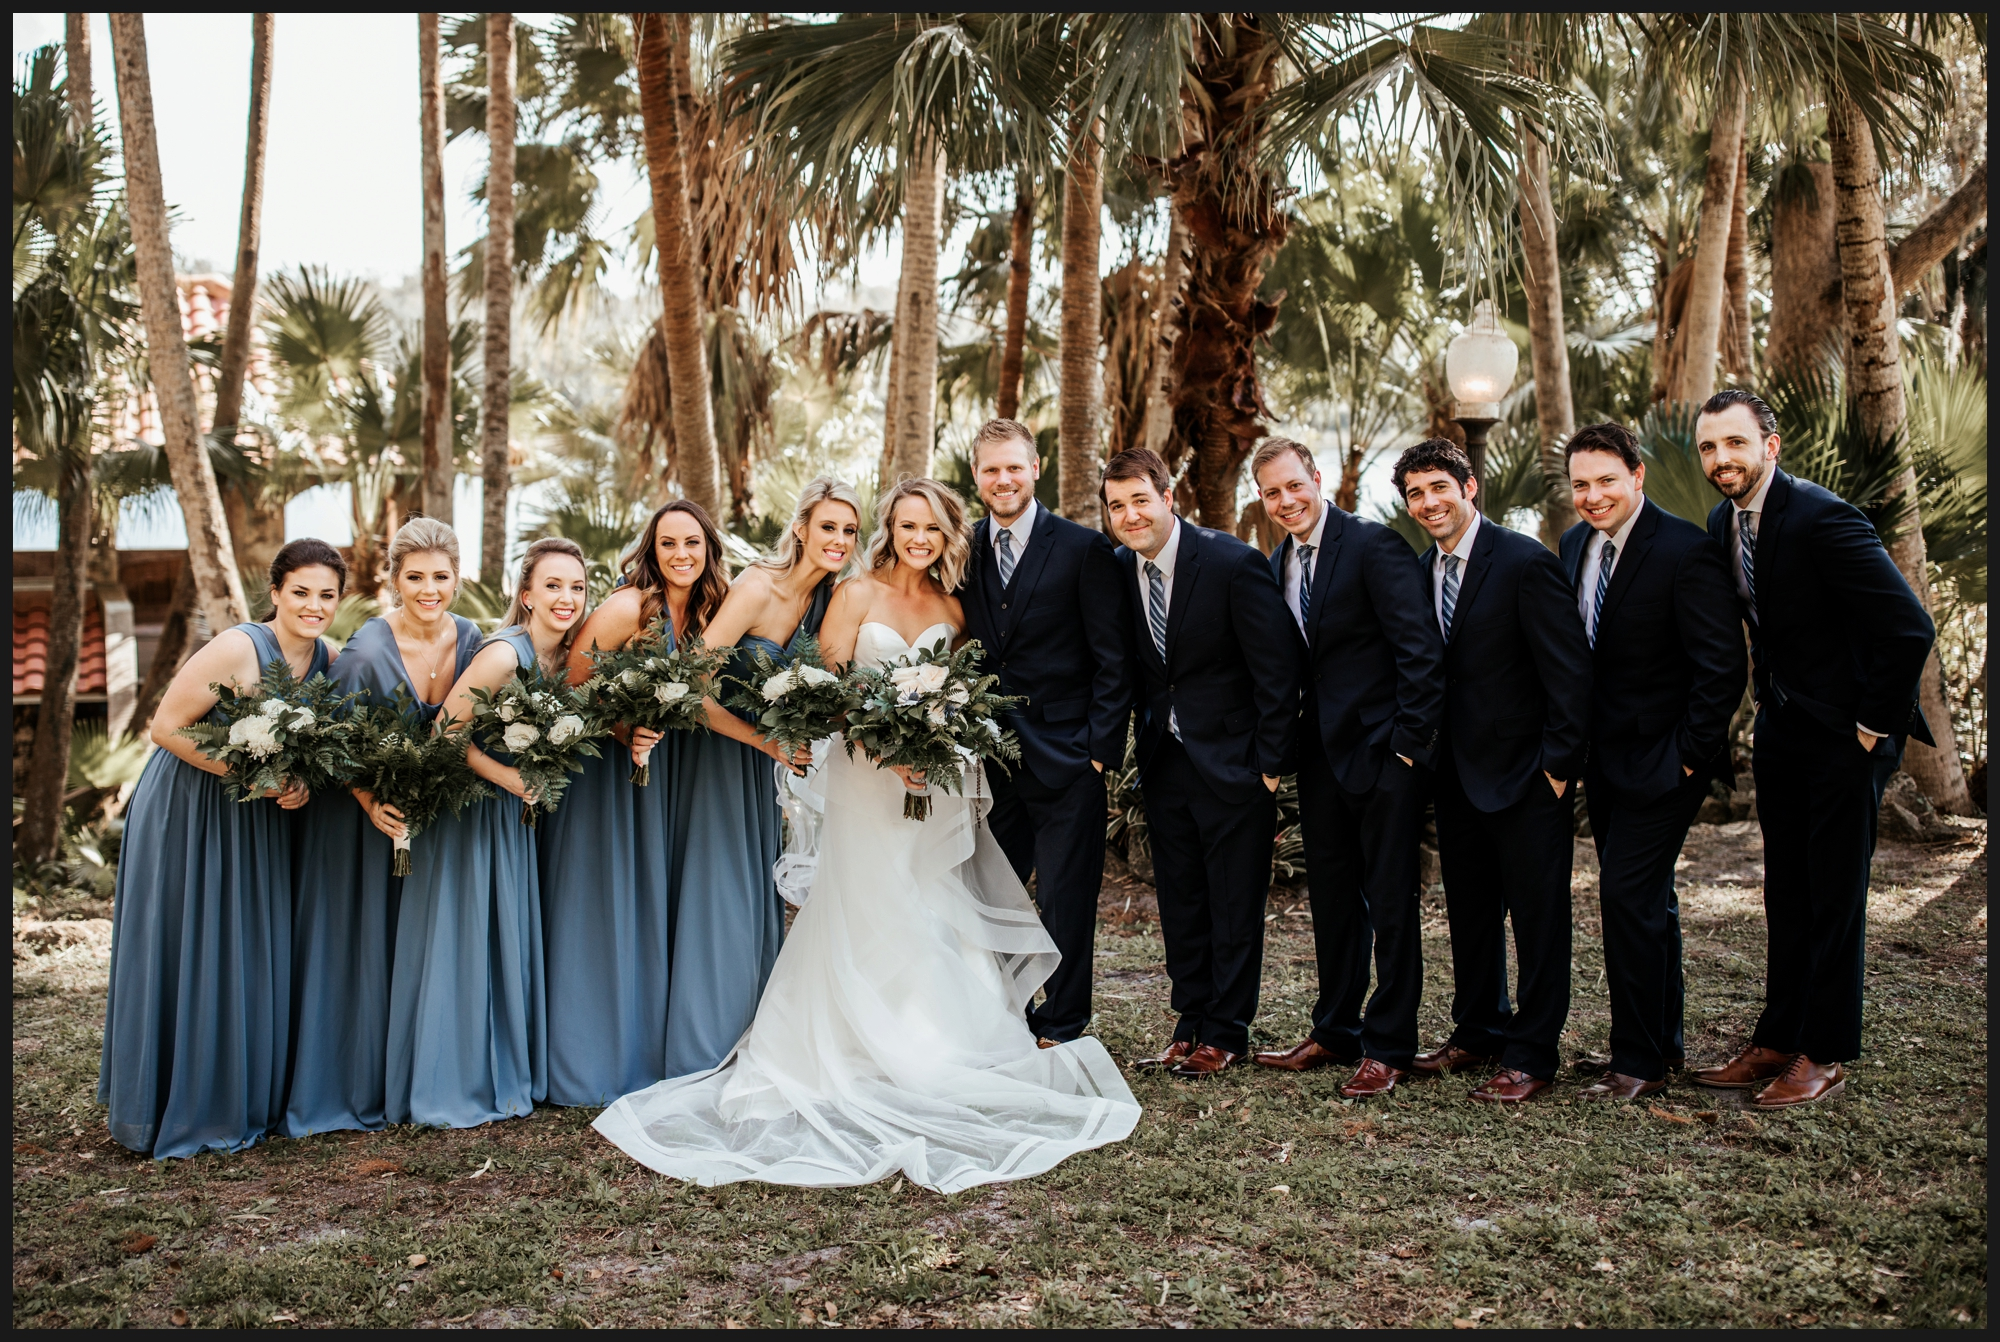 Orlando-Wedding-Photographer-destination-wedding-photographer-florida-wedding-photographer-bohemian-wedding-photographer_1506.jpg